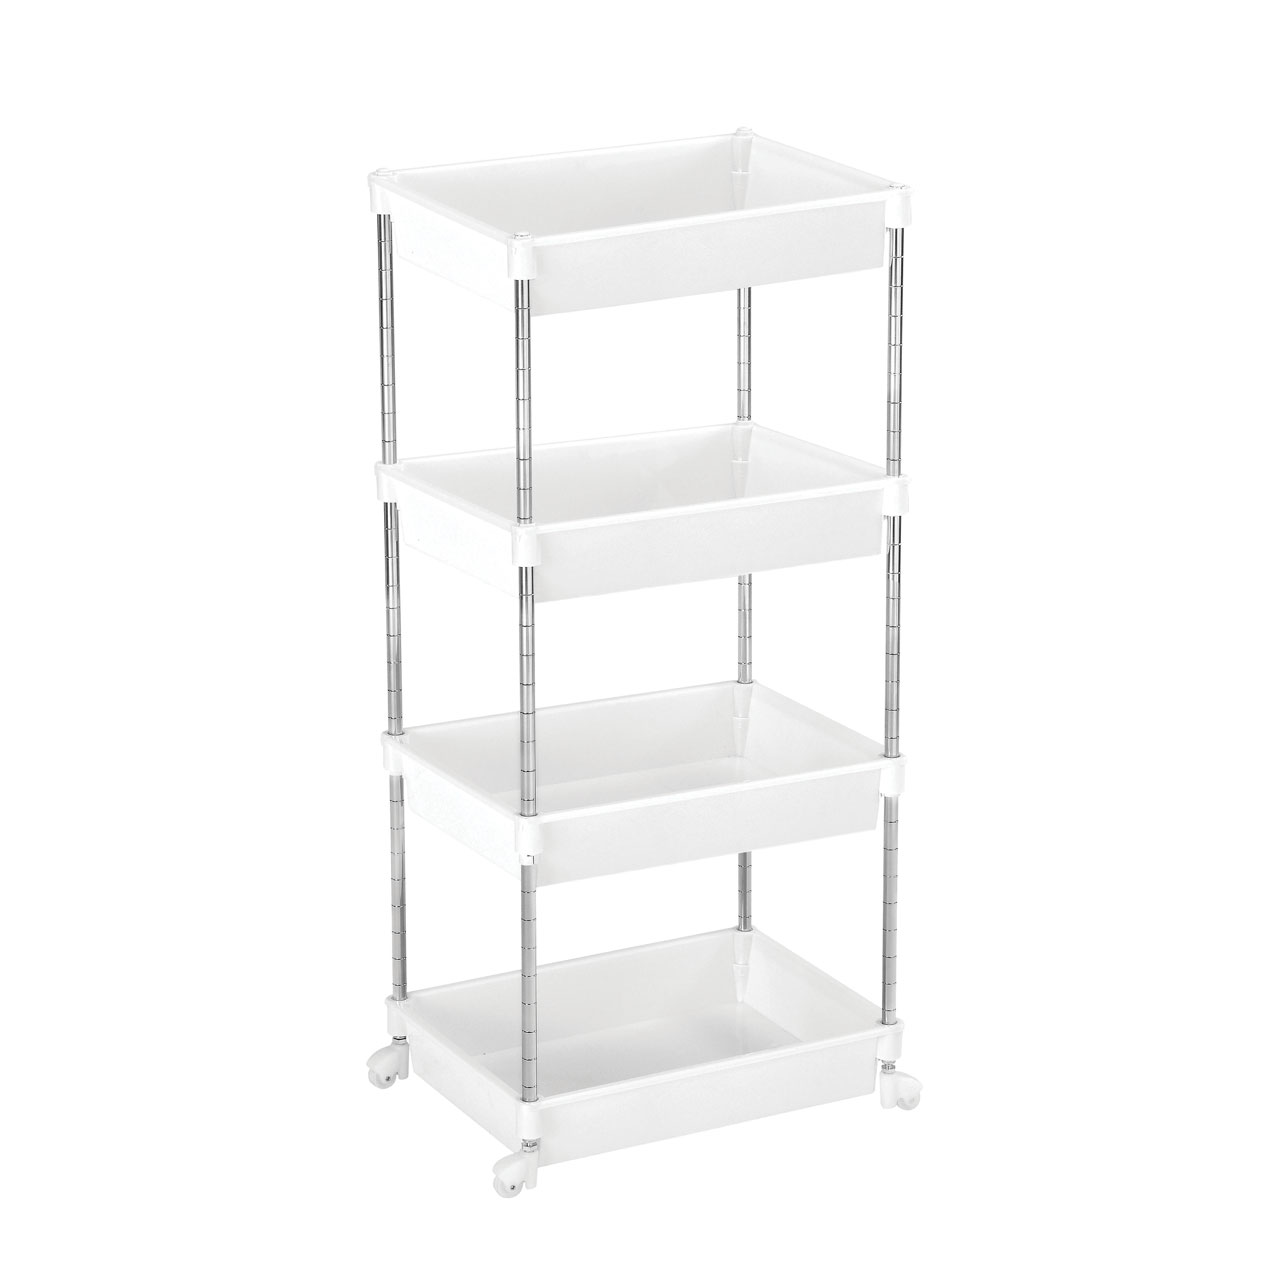 Cool Alumunium Aluminum 3 Tier Bathroom Storage Wall Shelf Rack 19321